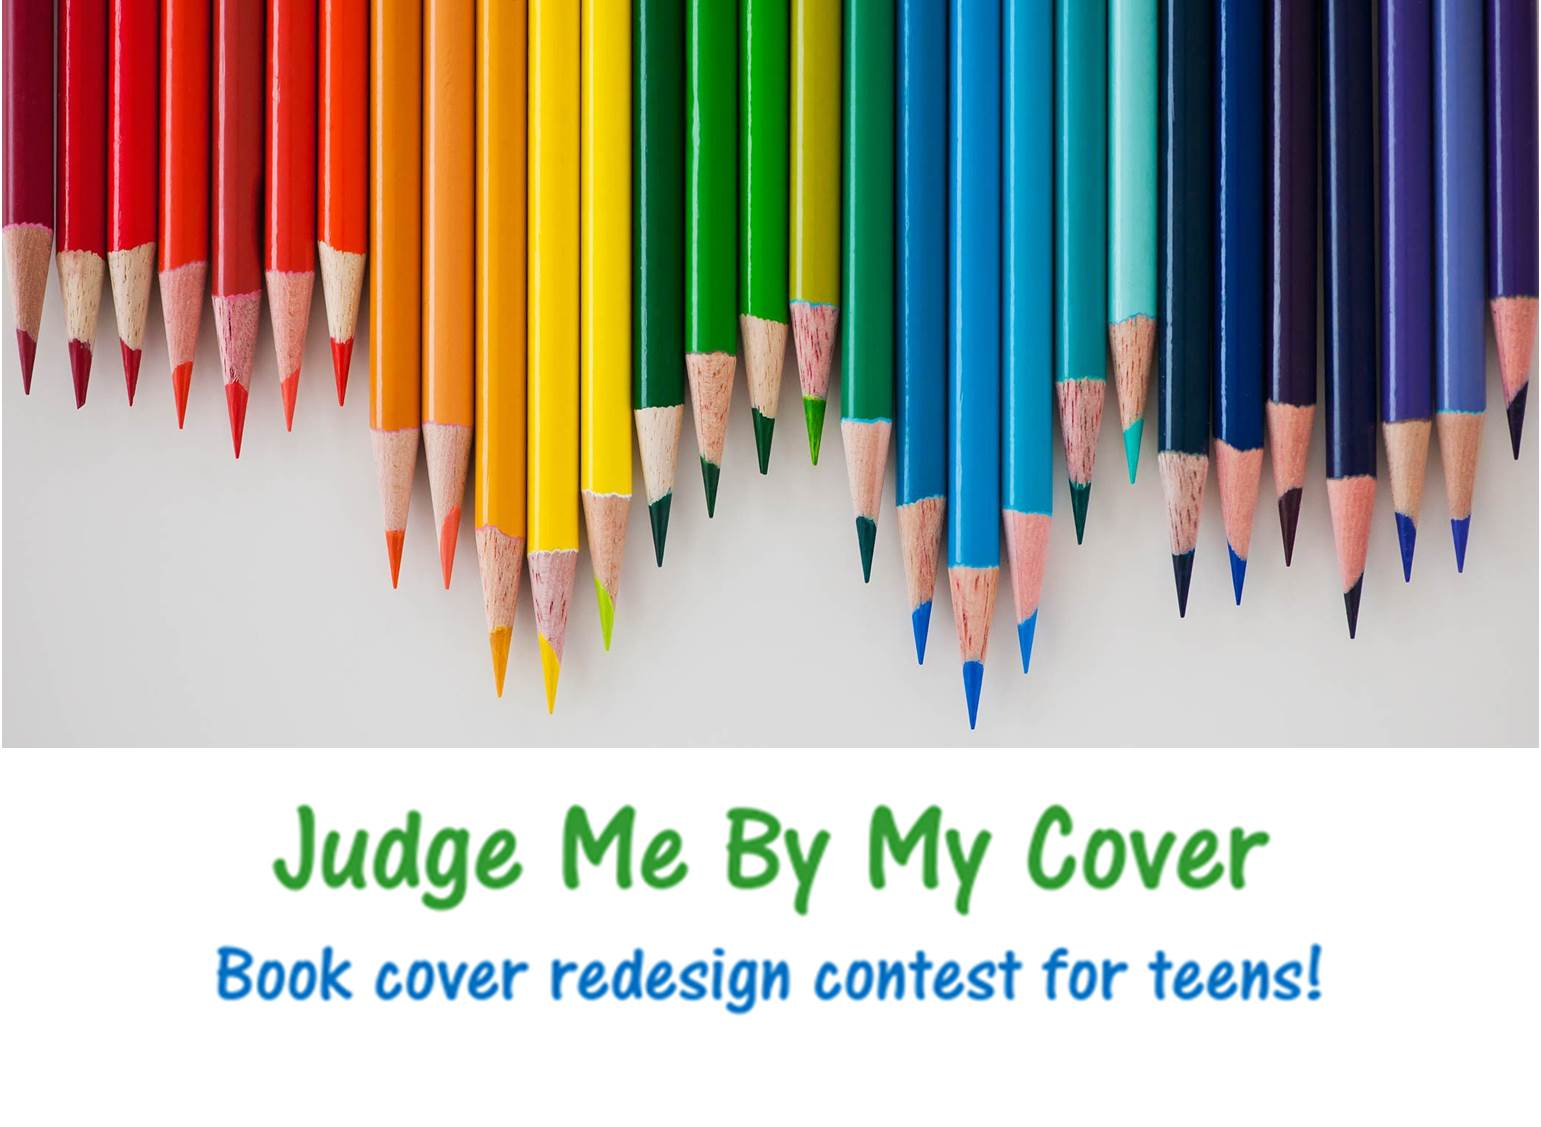 Teen Book Cover Re-Design Contest